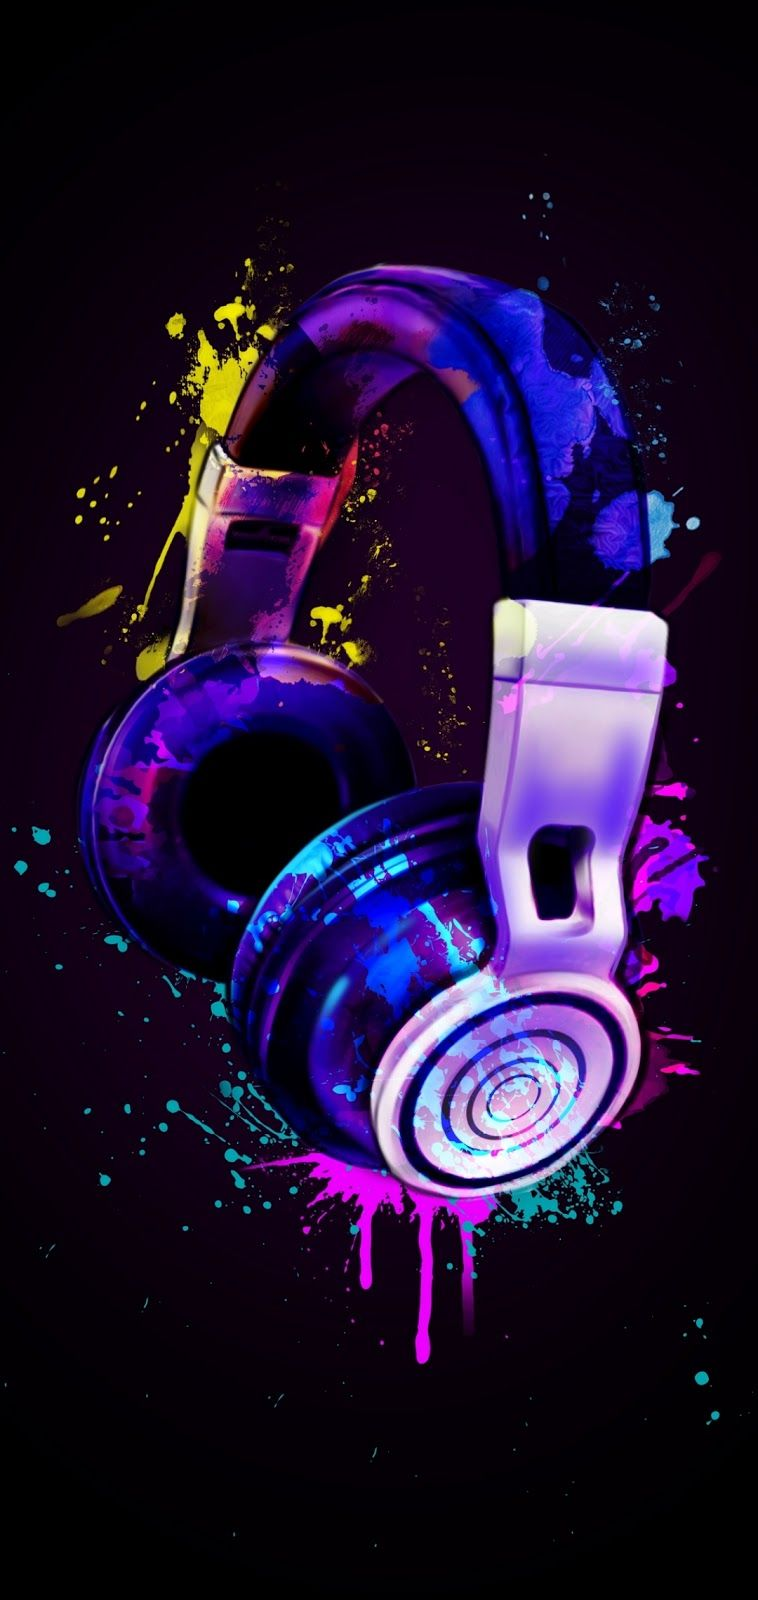 Exclusive Wallpaper Music Hd Ddwallpaper Music Wallpaper Neon Wallpaper Graffiti Wallpaper